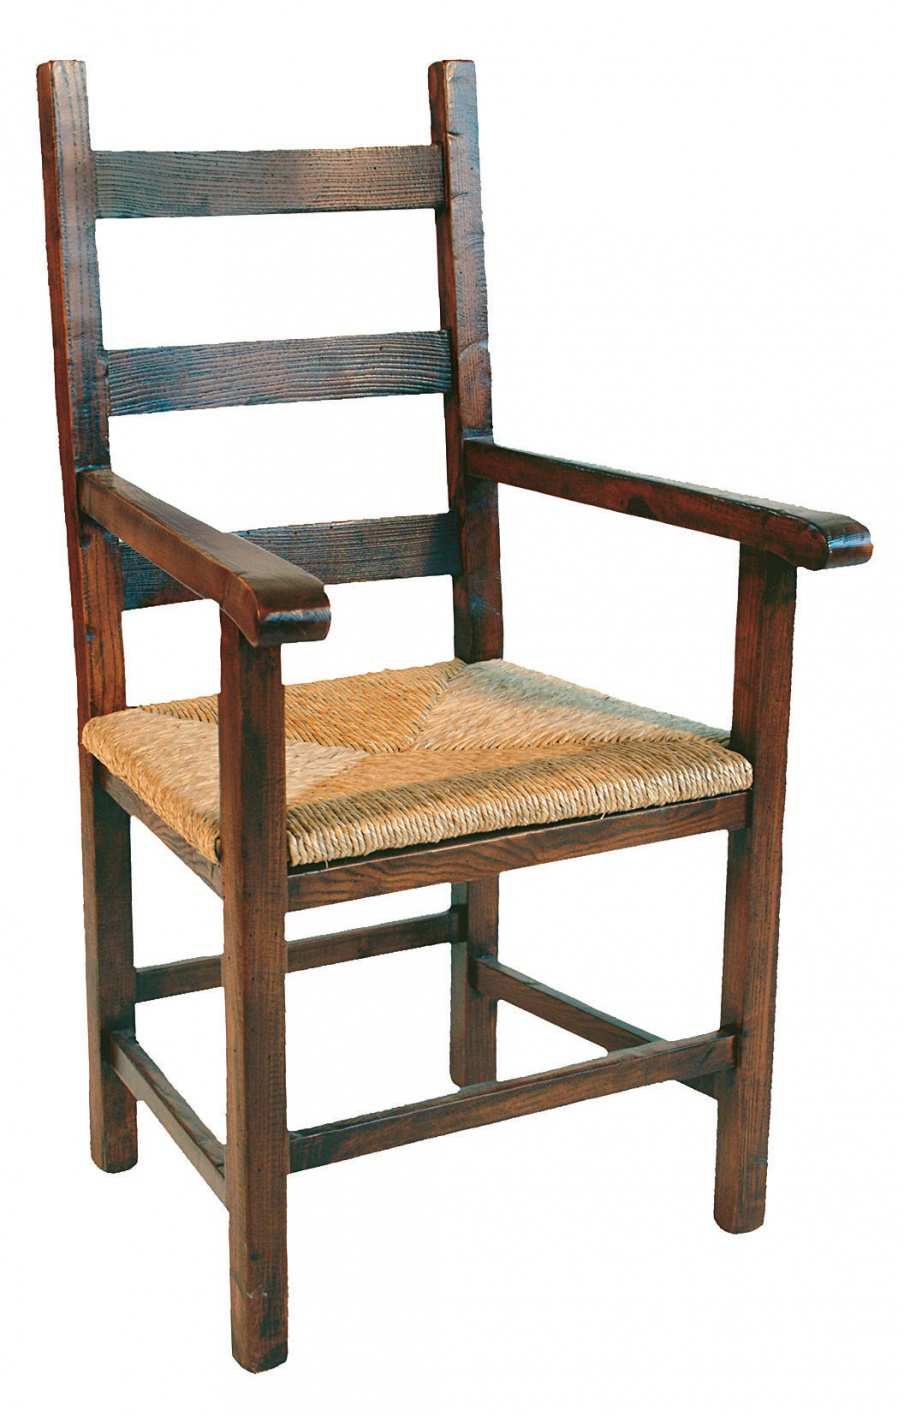 Chair wood pieve tiferno mobili luxury furniture mr for Mobili wooden art